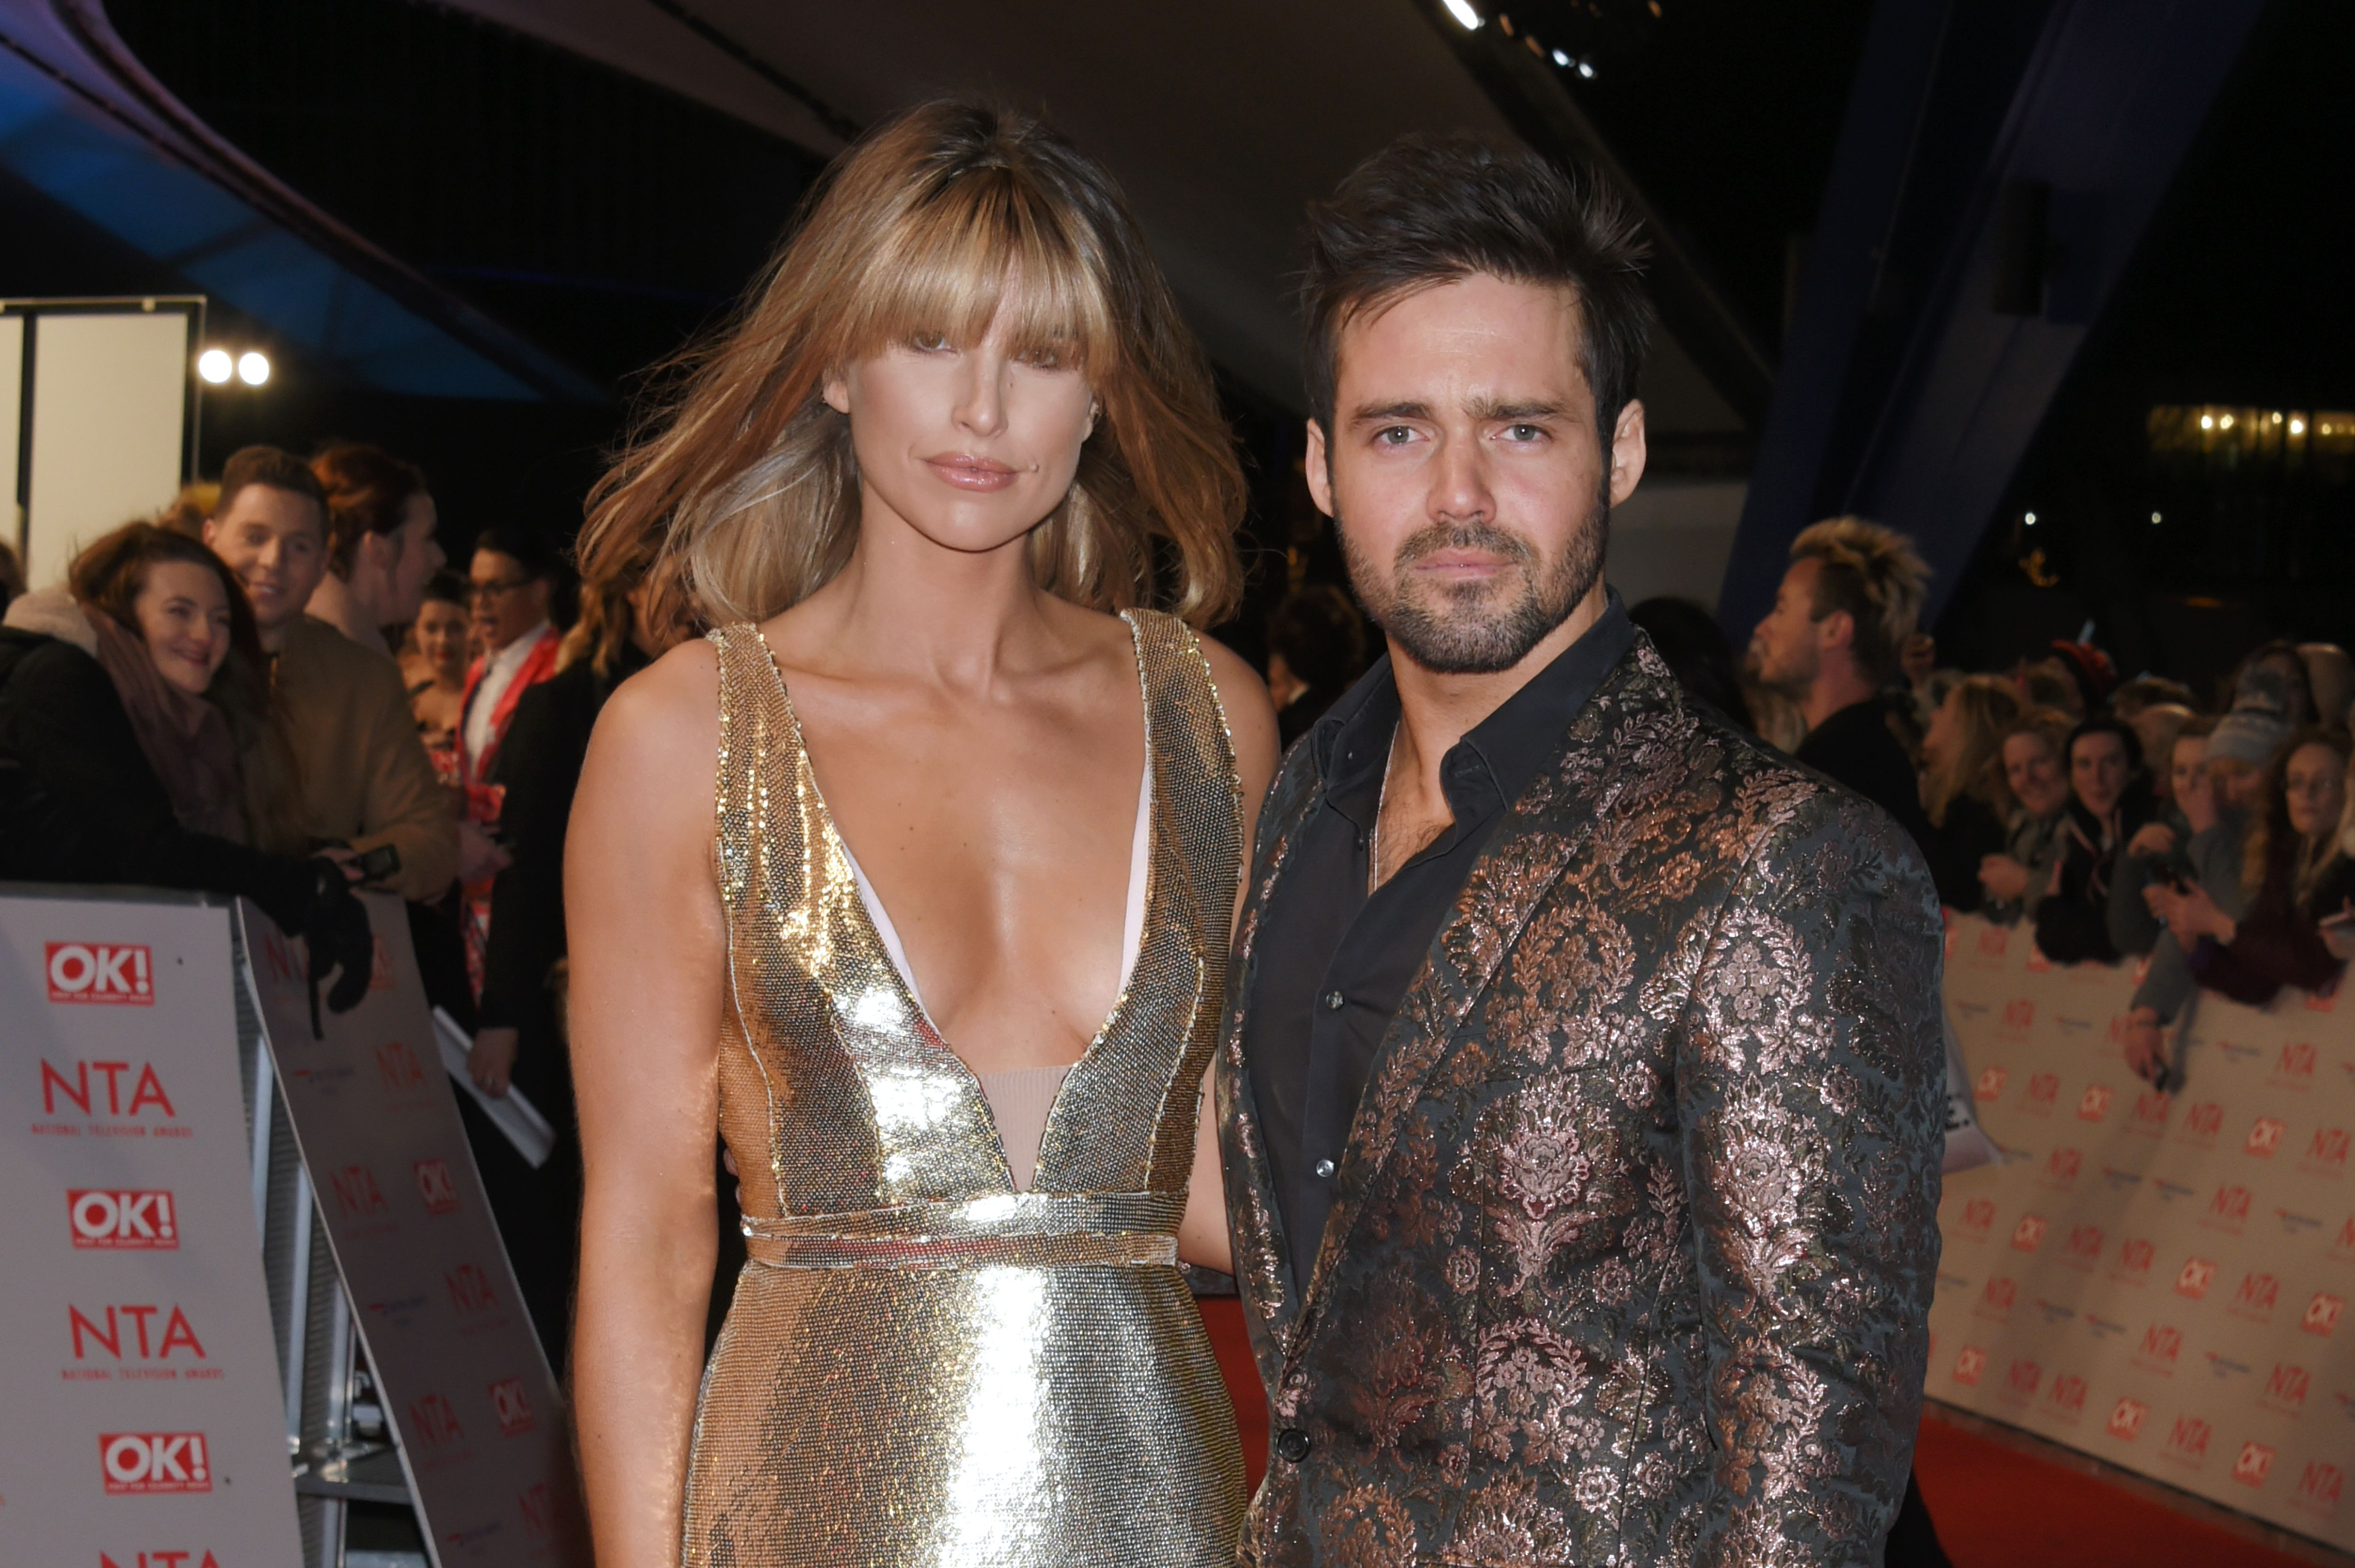 Spencer Matthews and Vogue Williams have welcomed their first child